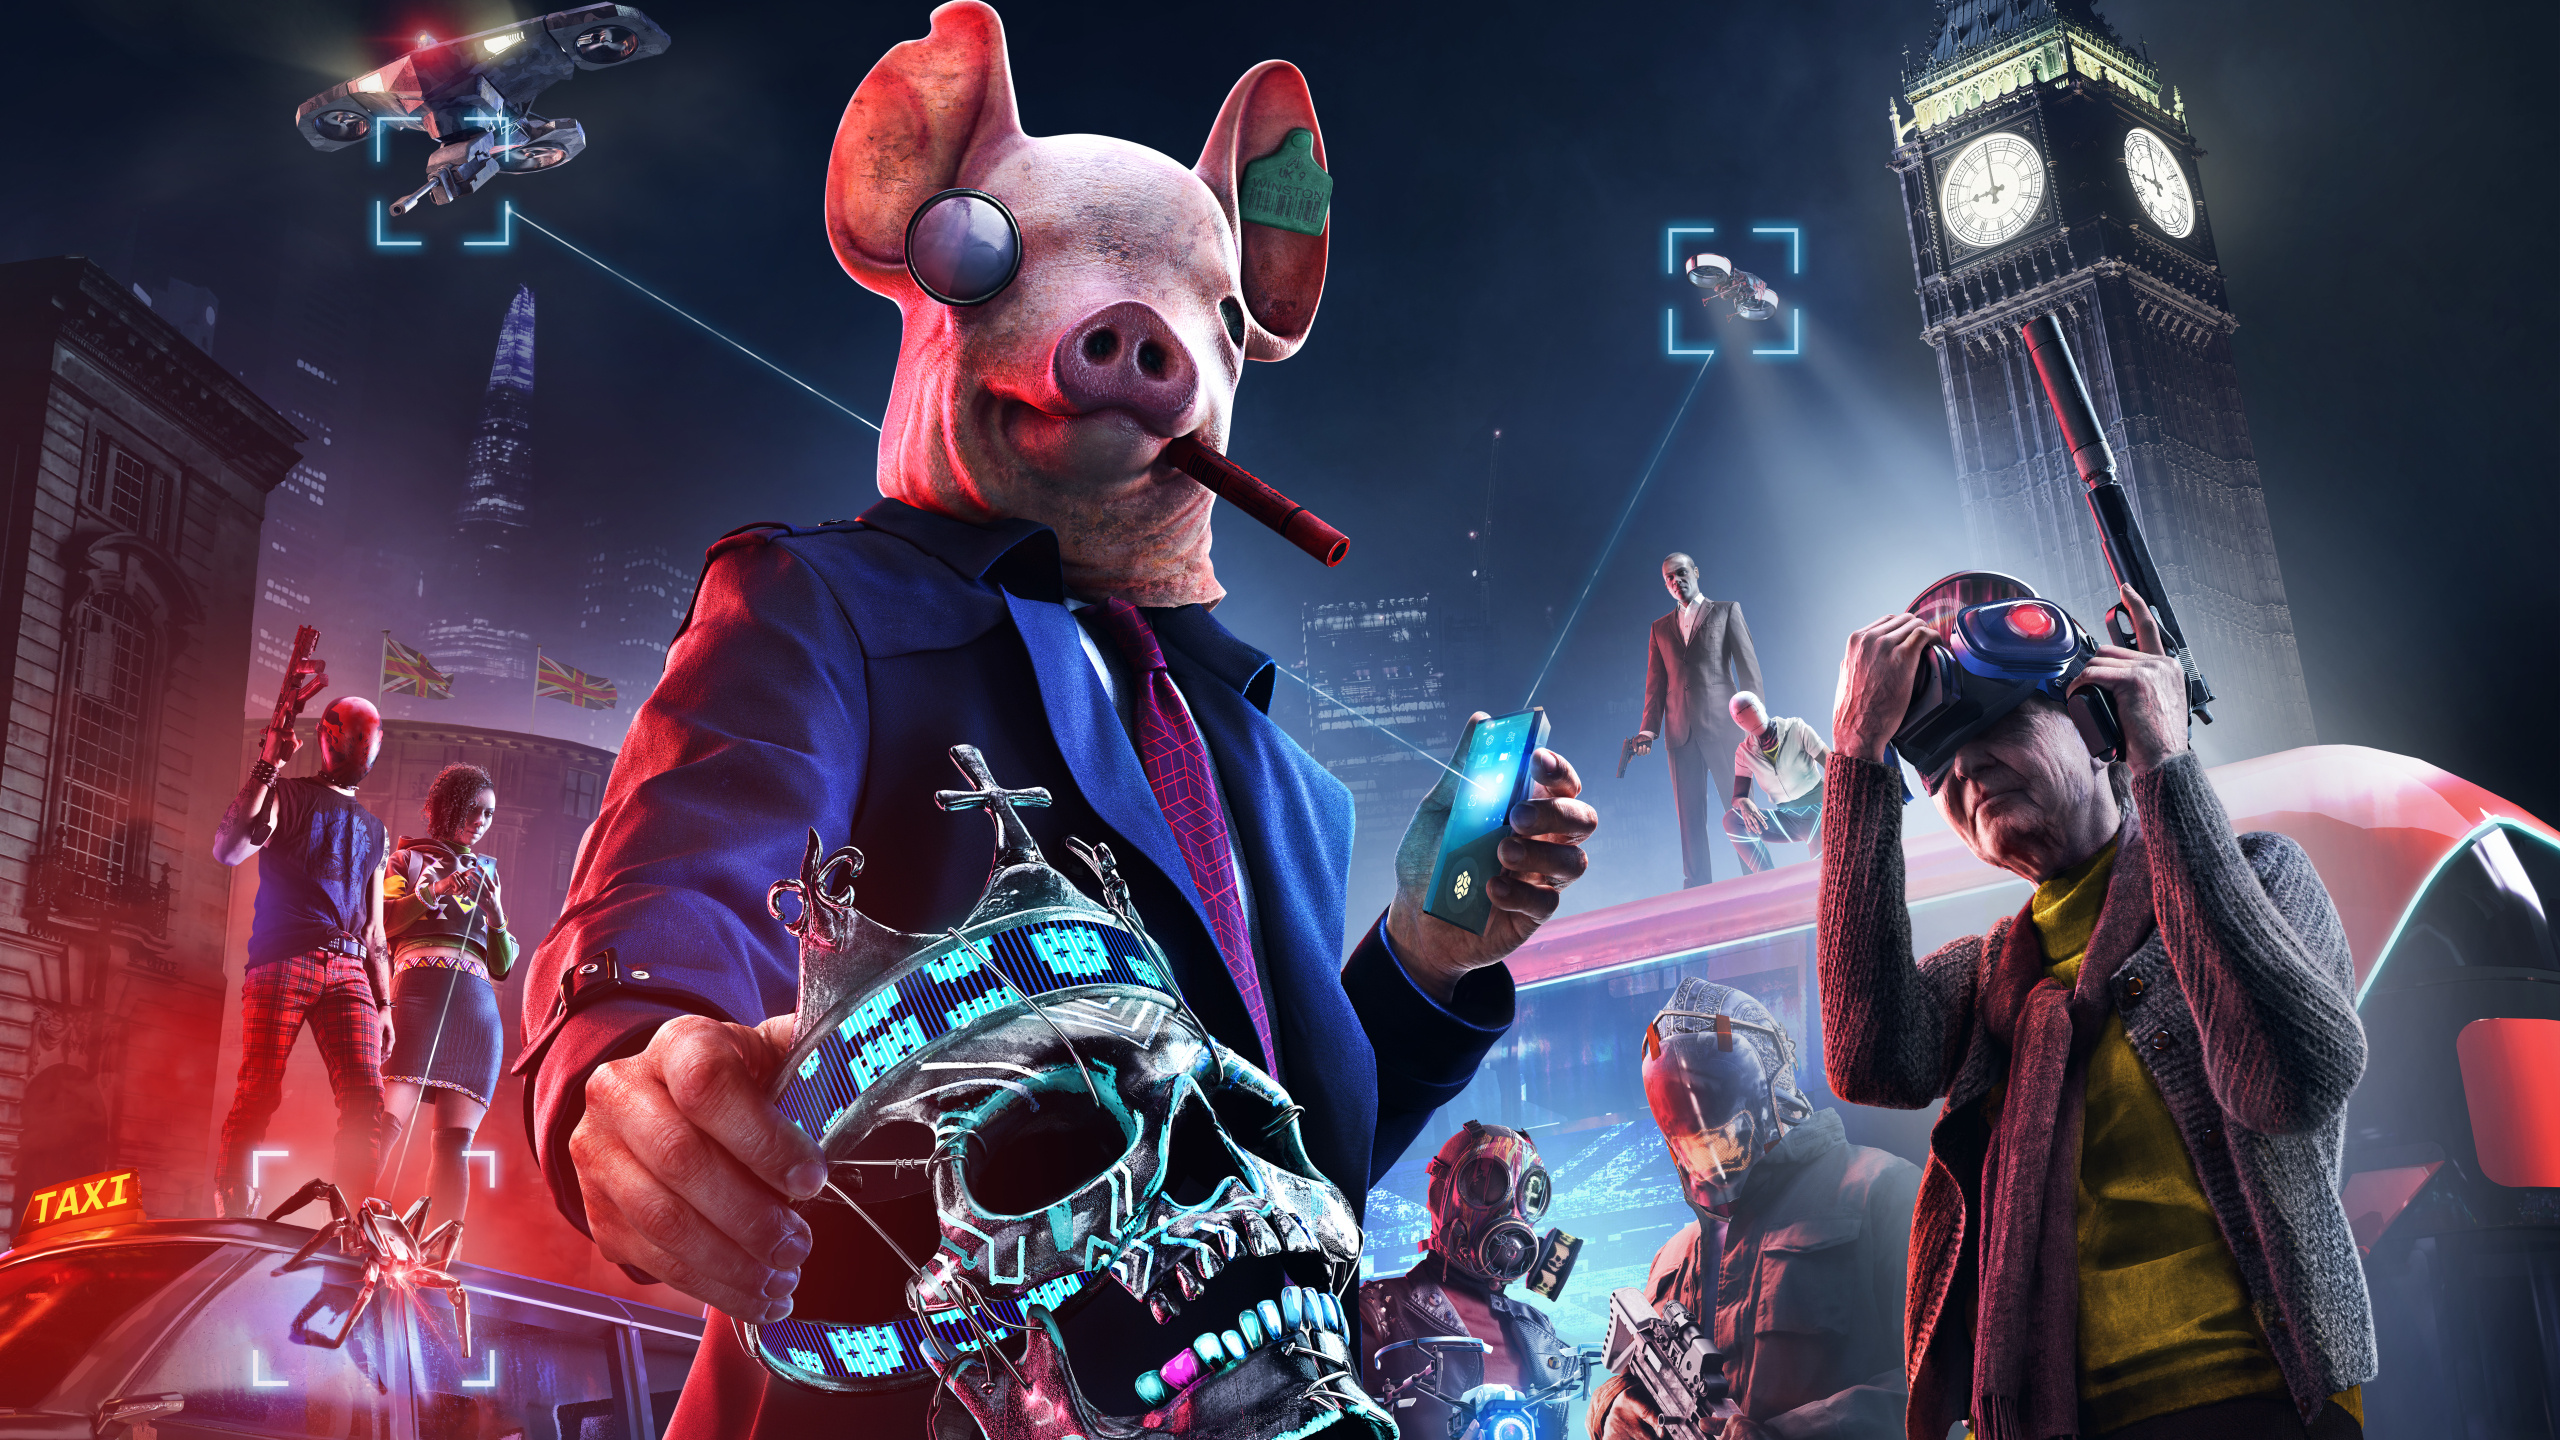 Watch Dogs Legion 'will take full advantage' of PS5 and Scarlett